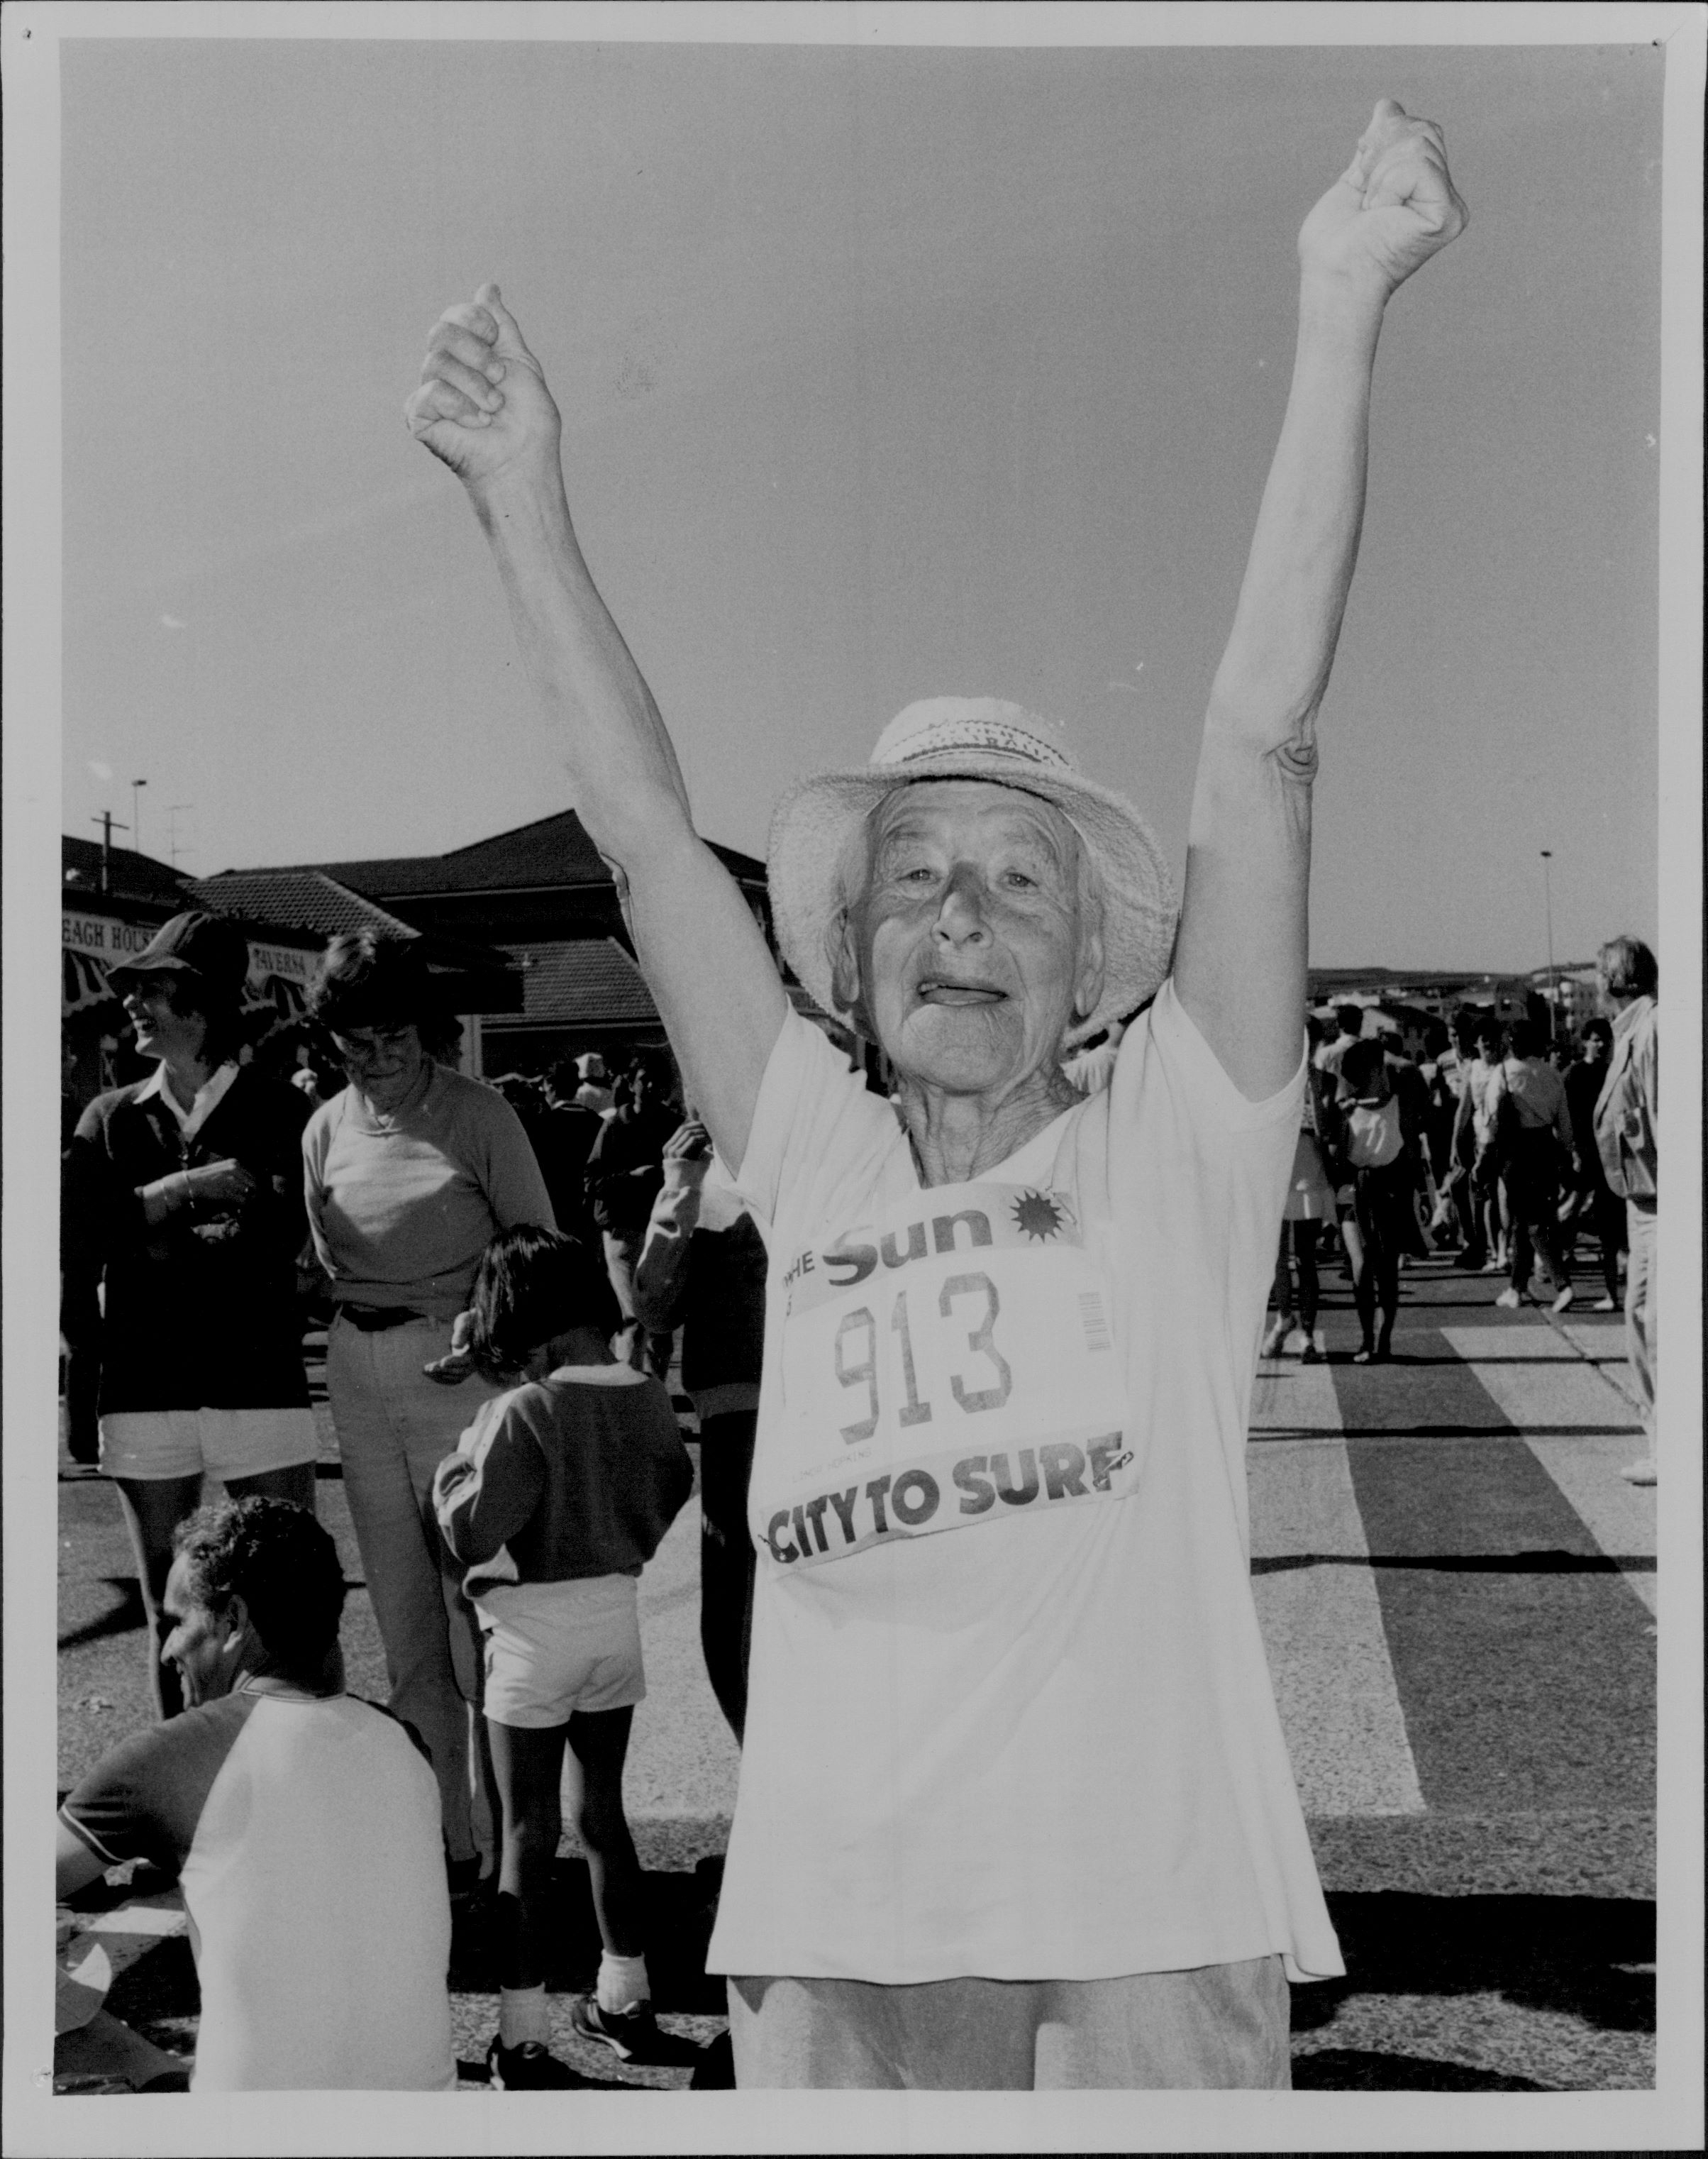 Young at heart, runner 913 conquers City2Surf in 1986.